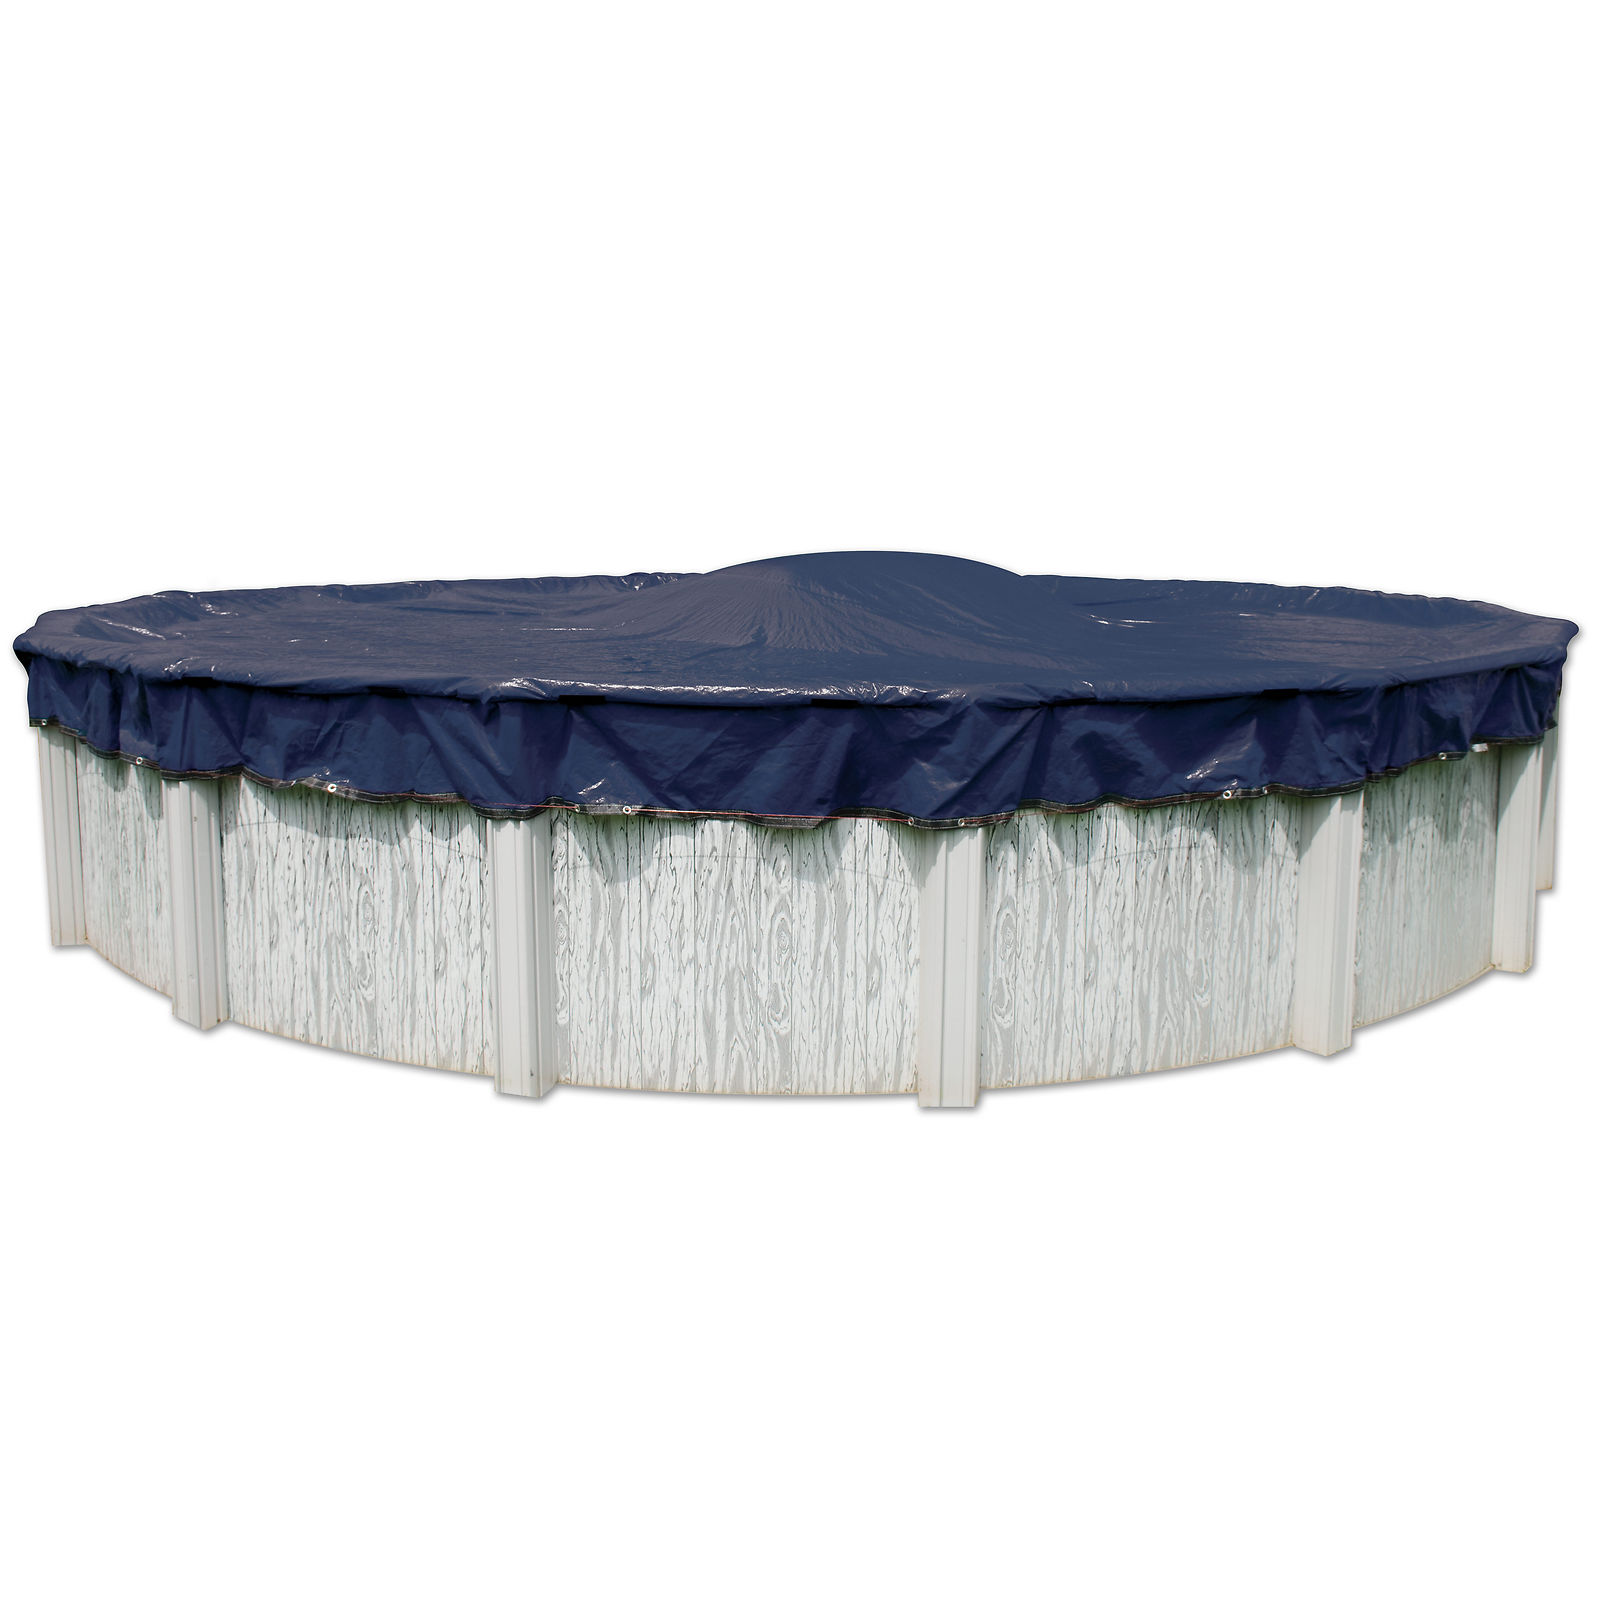 Details about 21\' ft Round Above Ground Swimming Pool Winter Cover - 10  Year Warranty